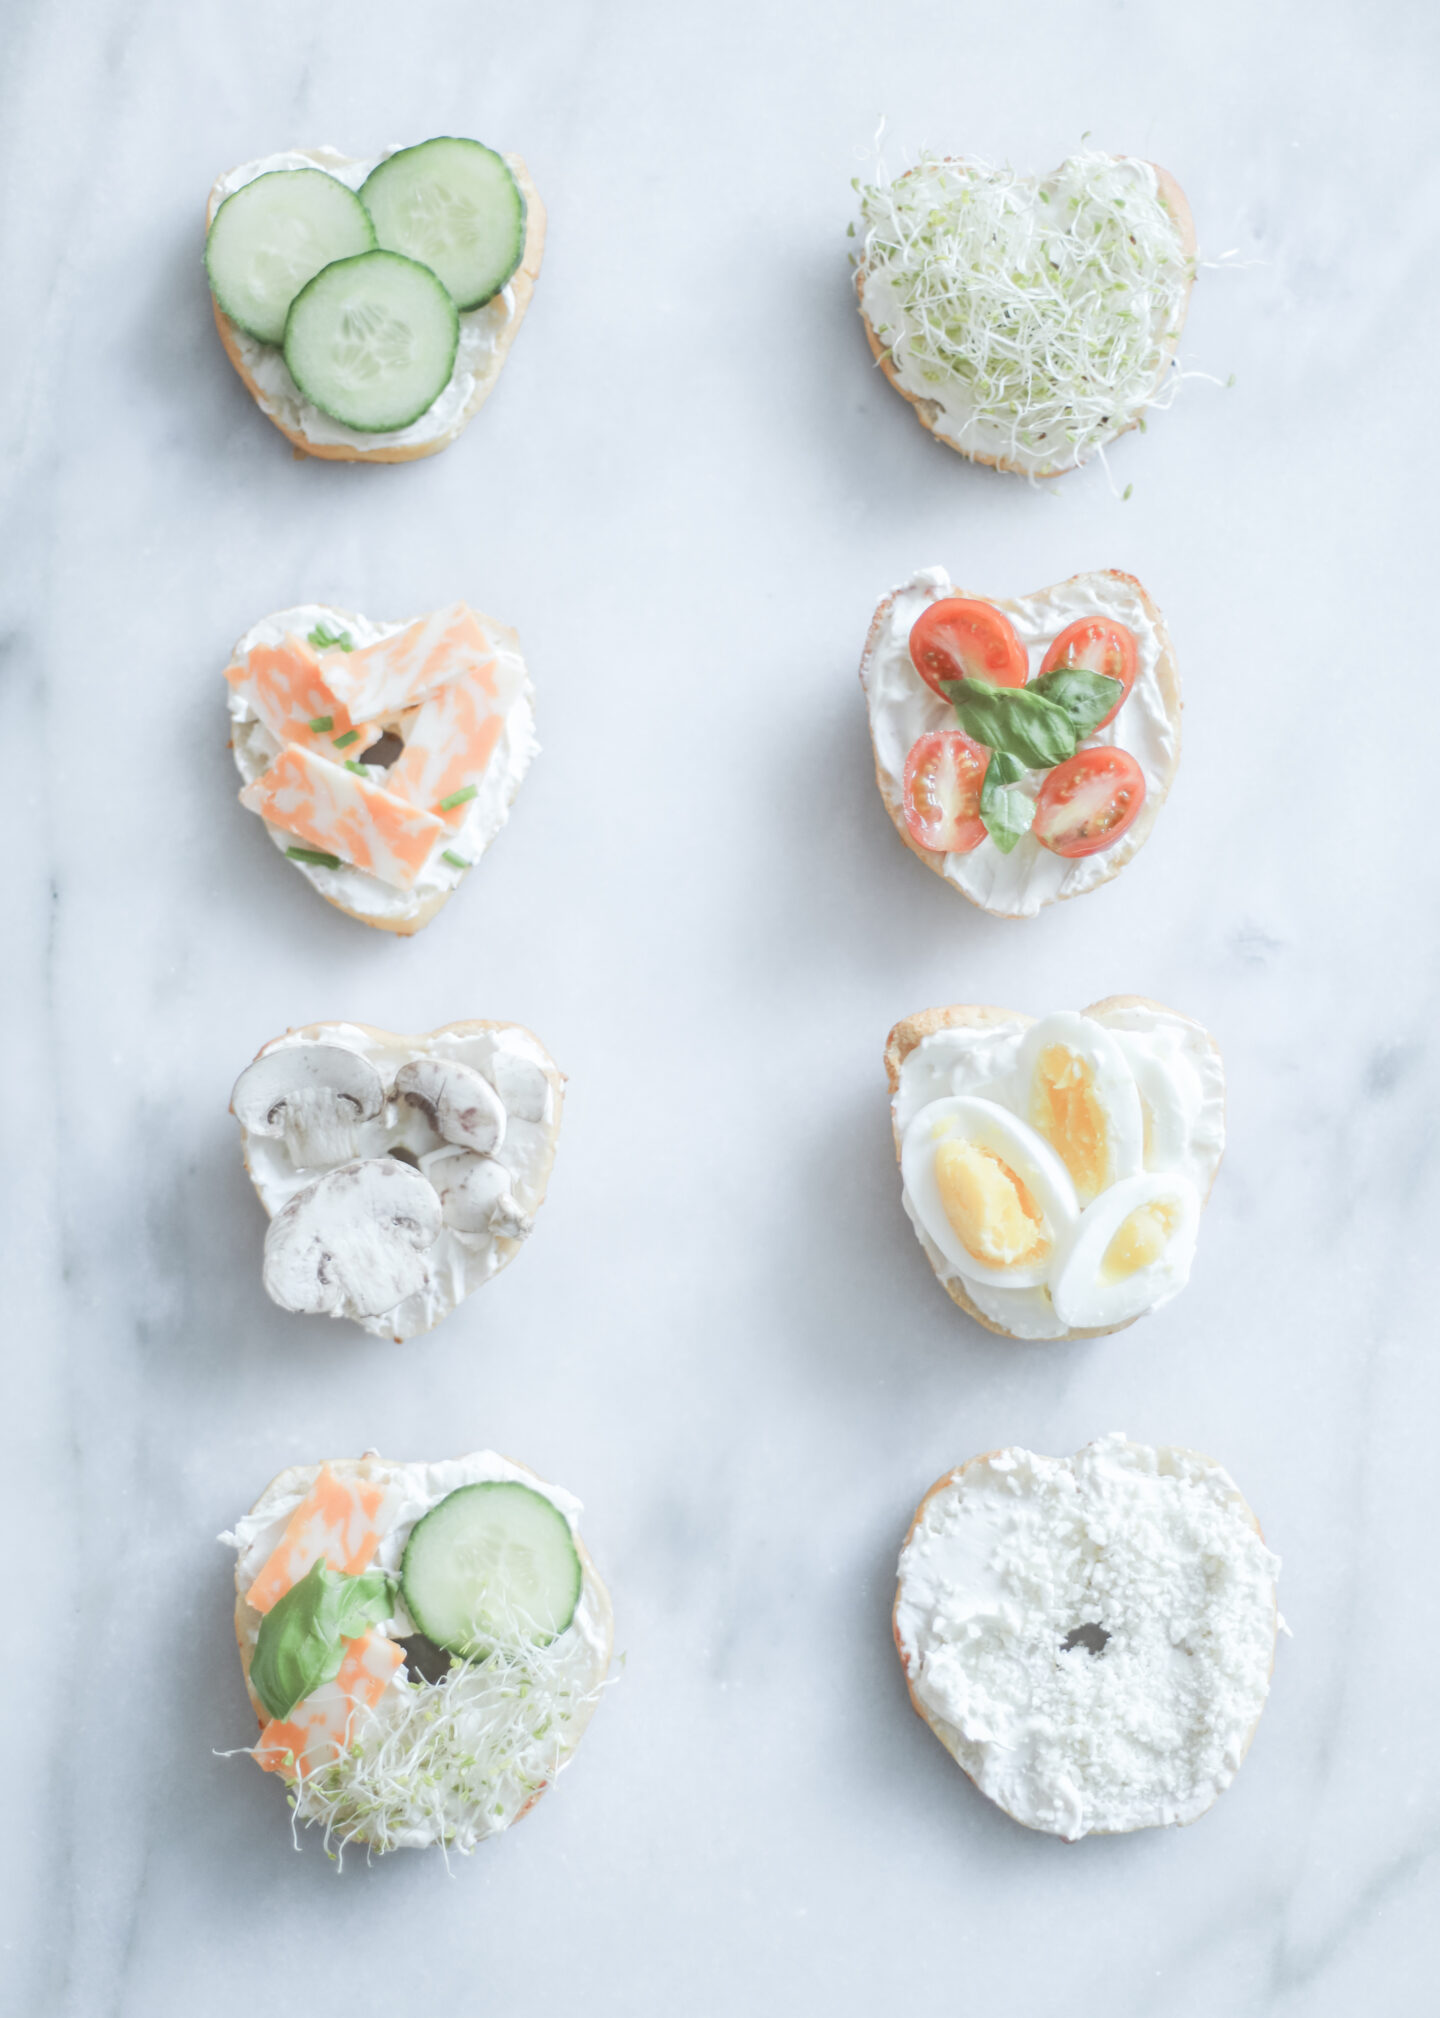 heart bagels with different toppings